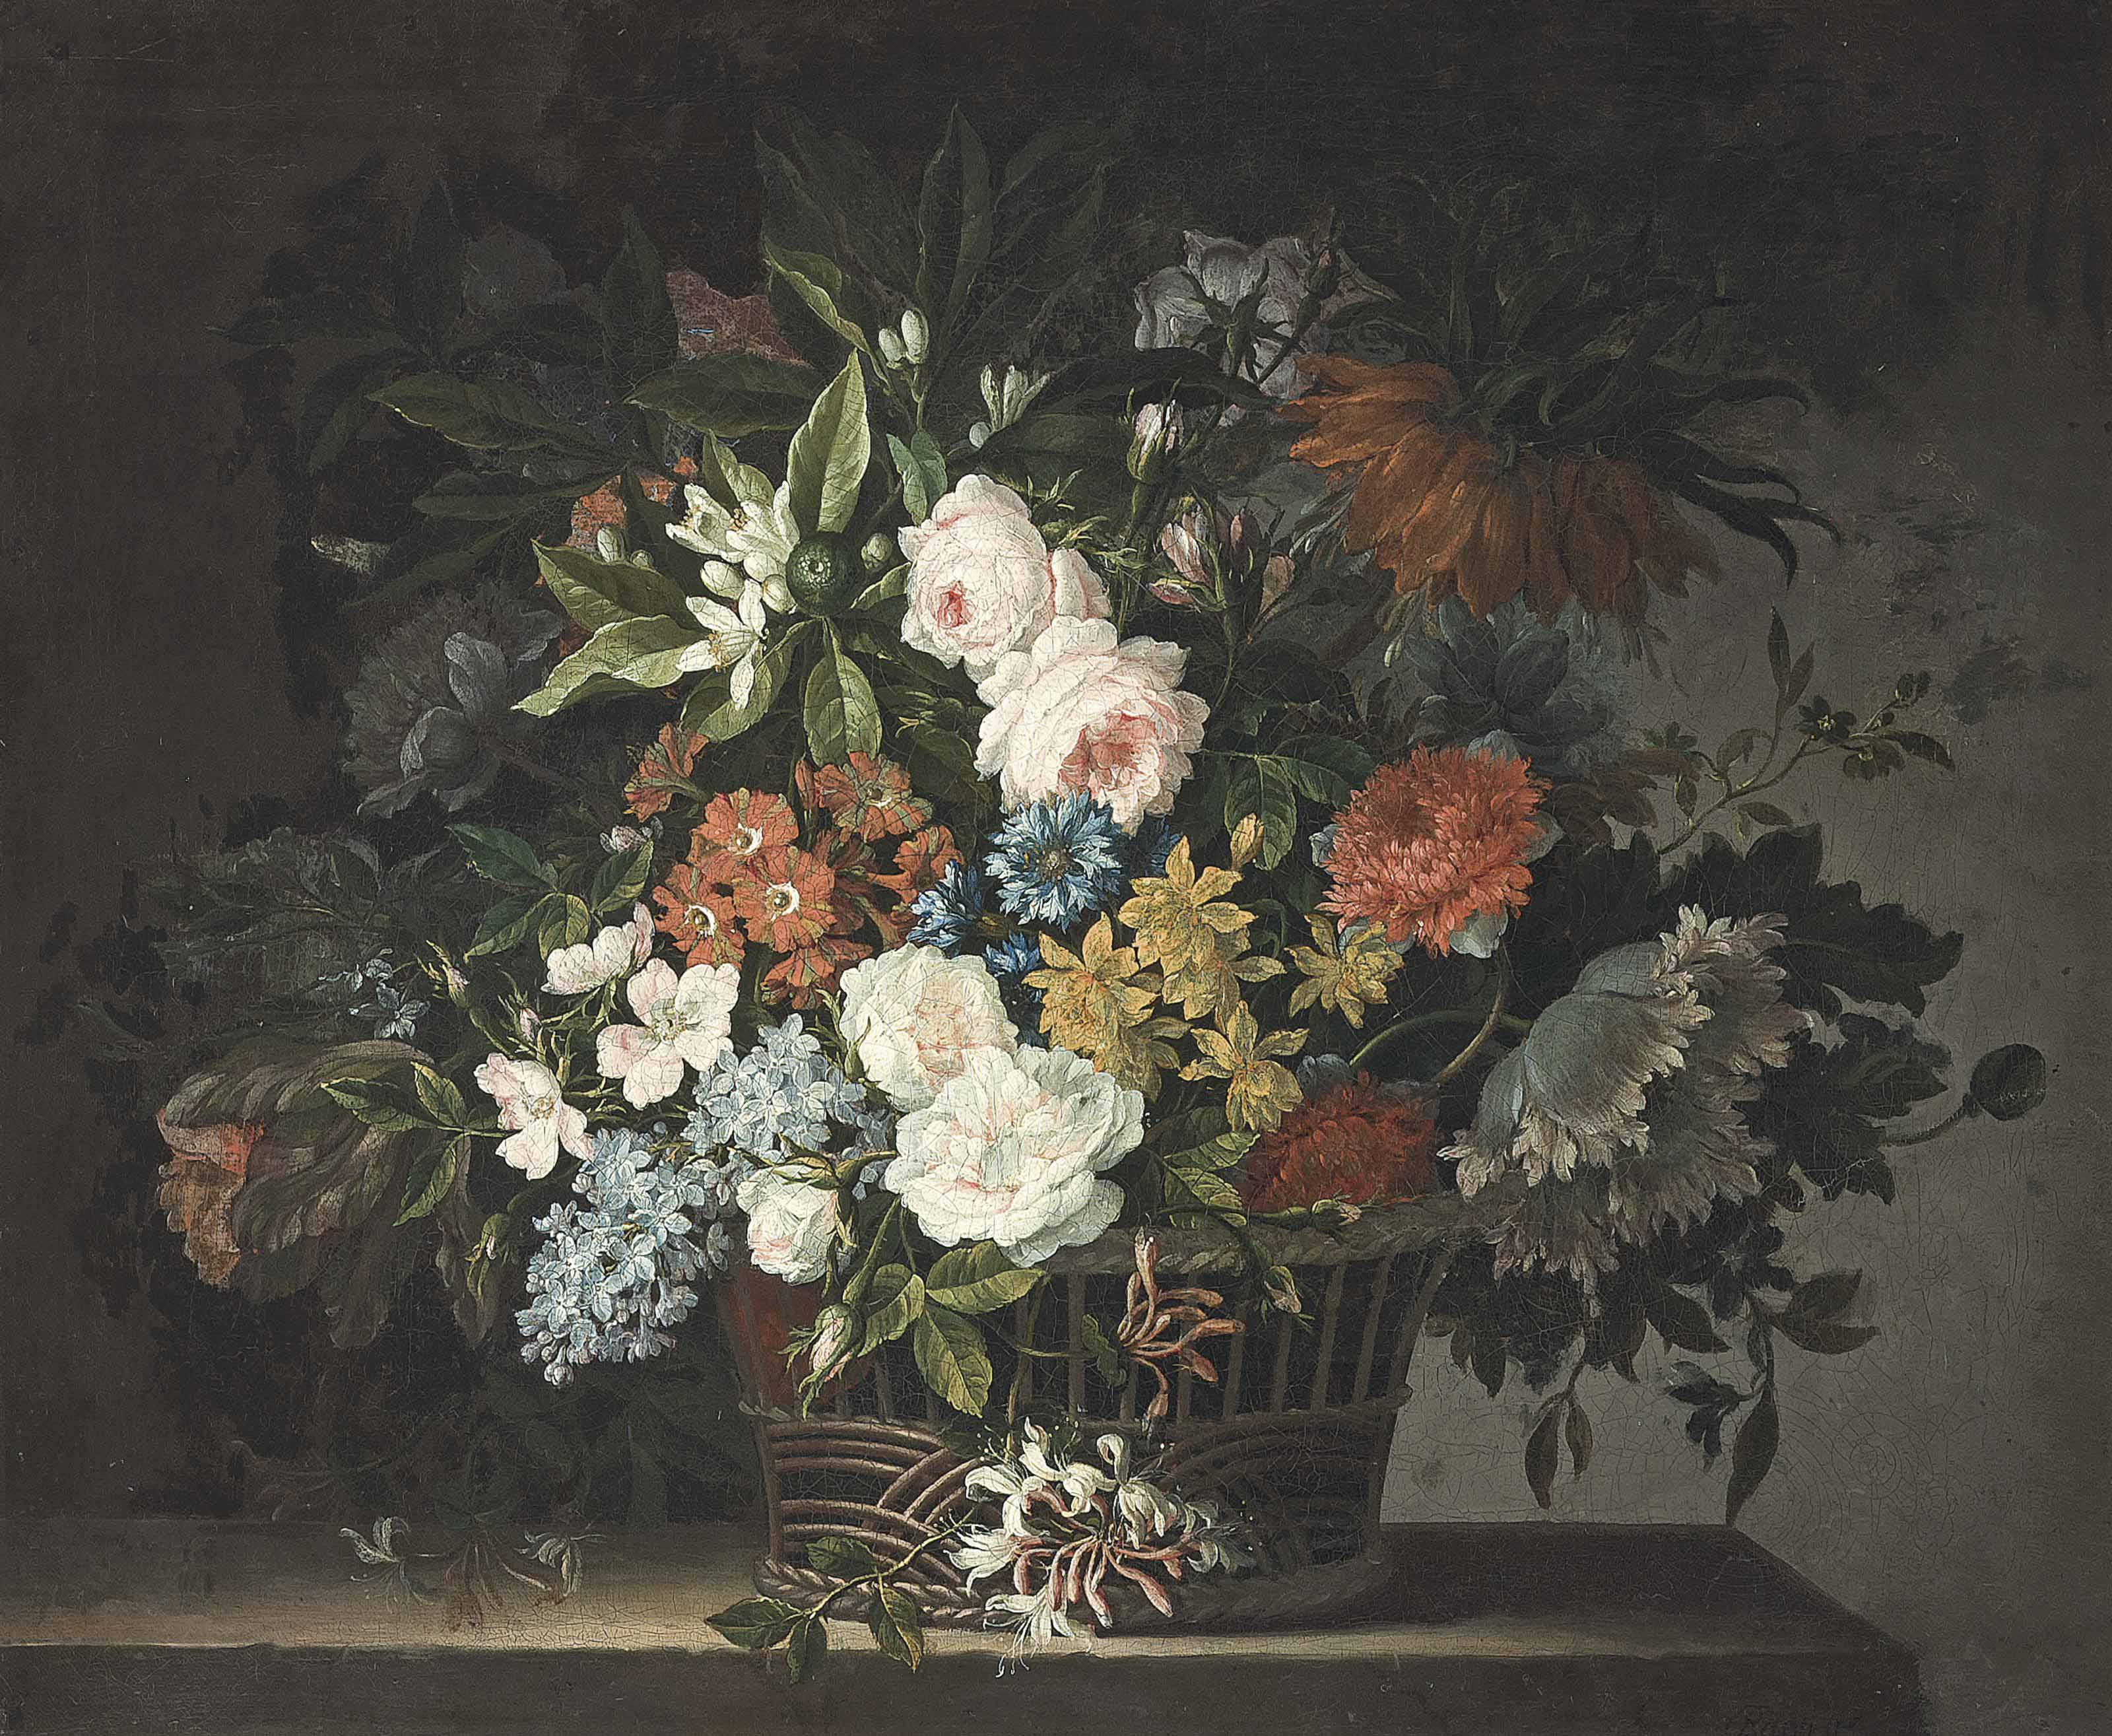 https://www.christies.com/img/LotImages/2015/CSK/2015_CSK_10448_0473_000(attributed_to_antoine_monnoyer_roses_parrot_tulips_carnations_lilies_a).jpg